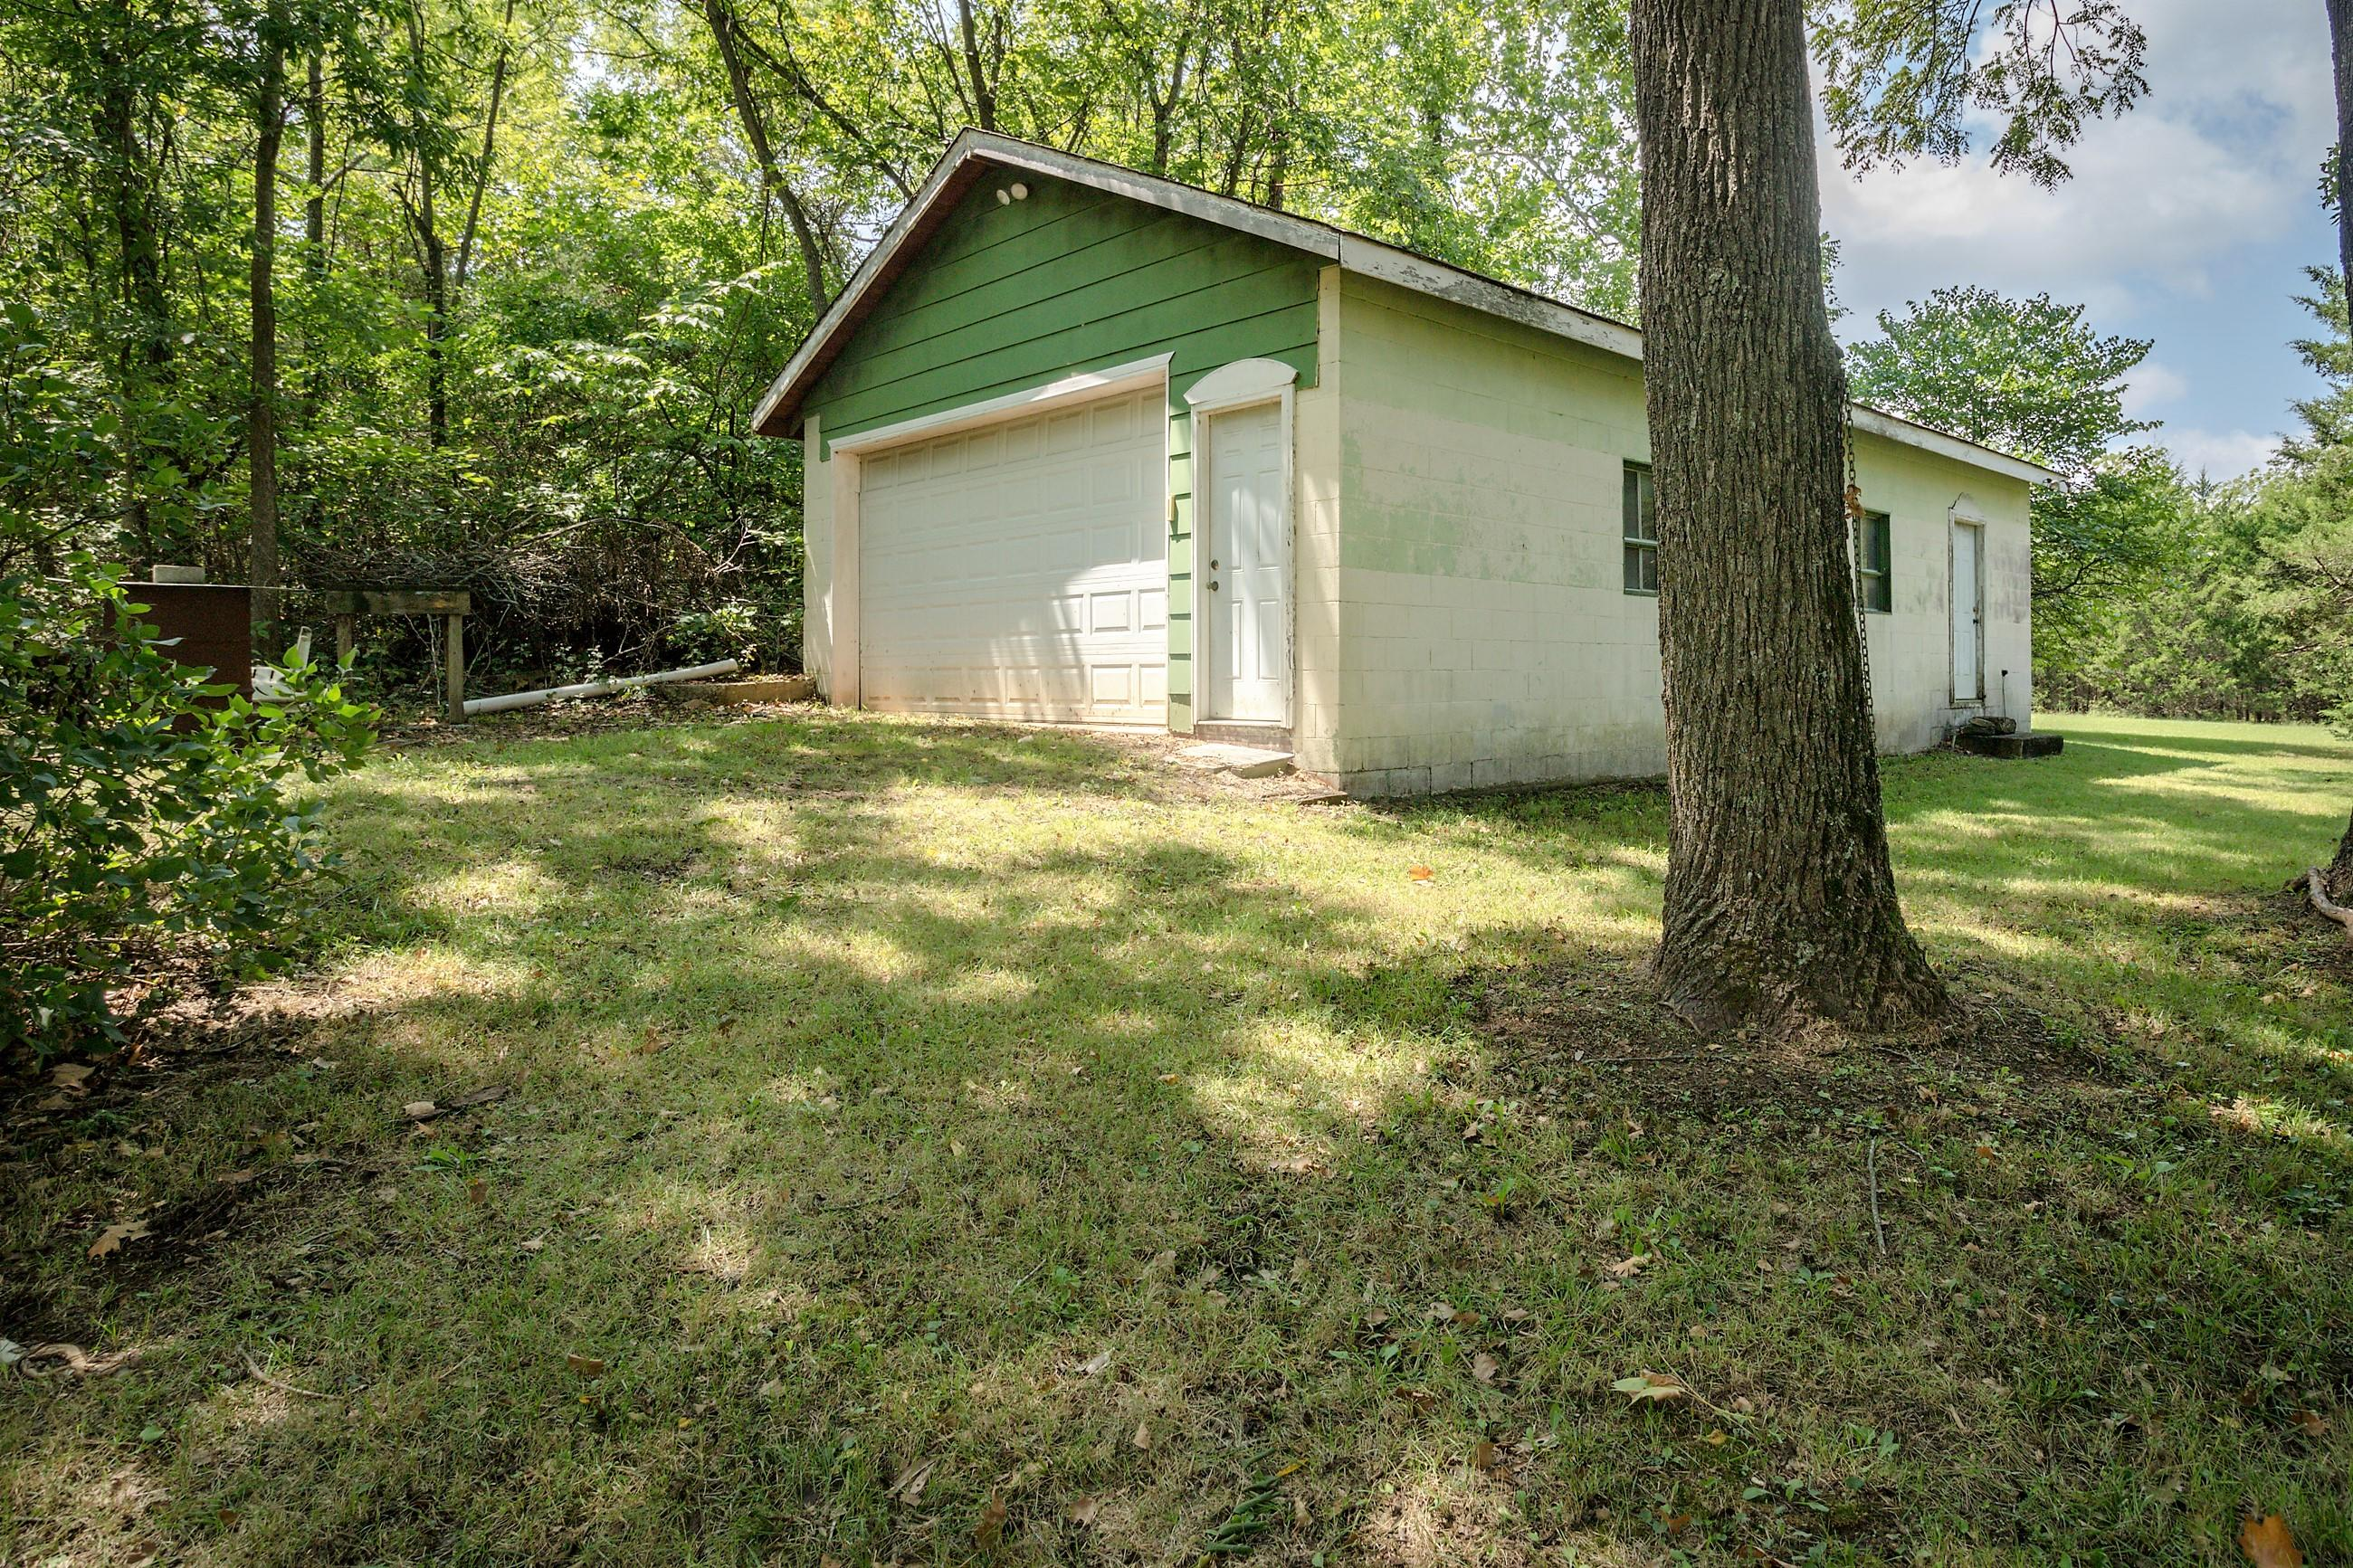 6582 West Farm Rd 44 Willard, MO 65781